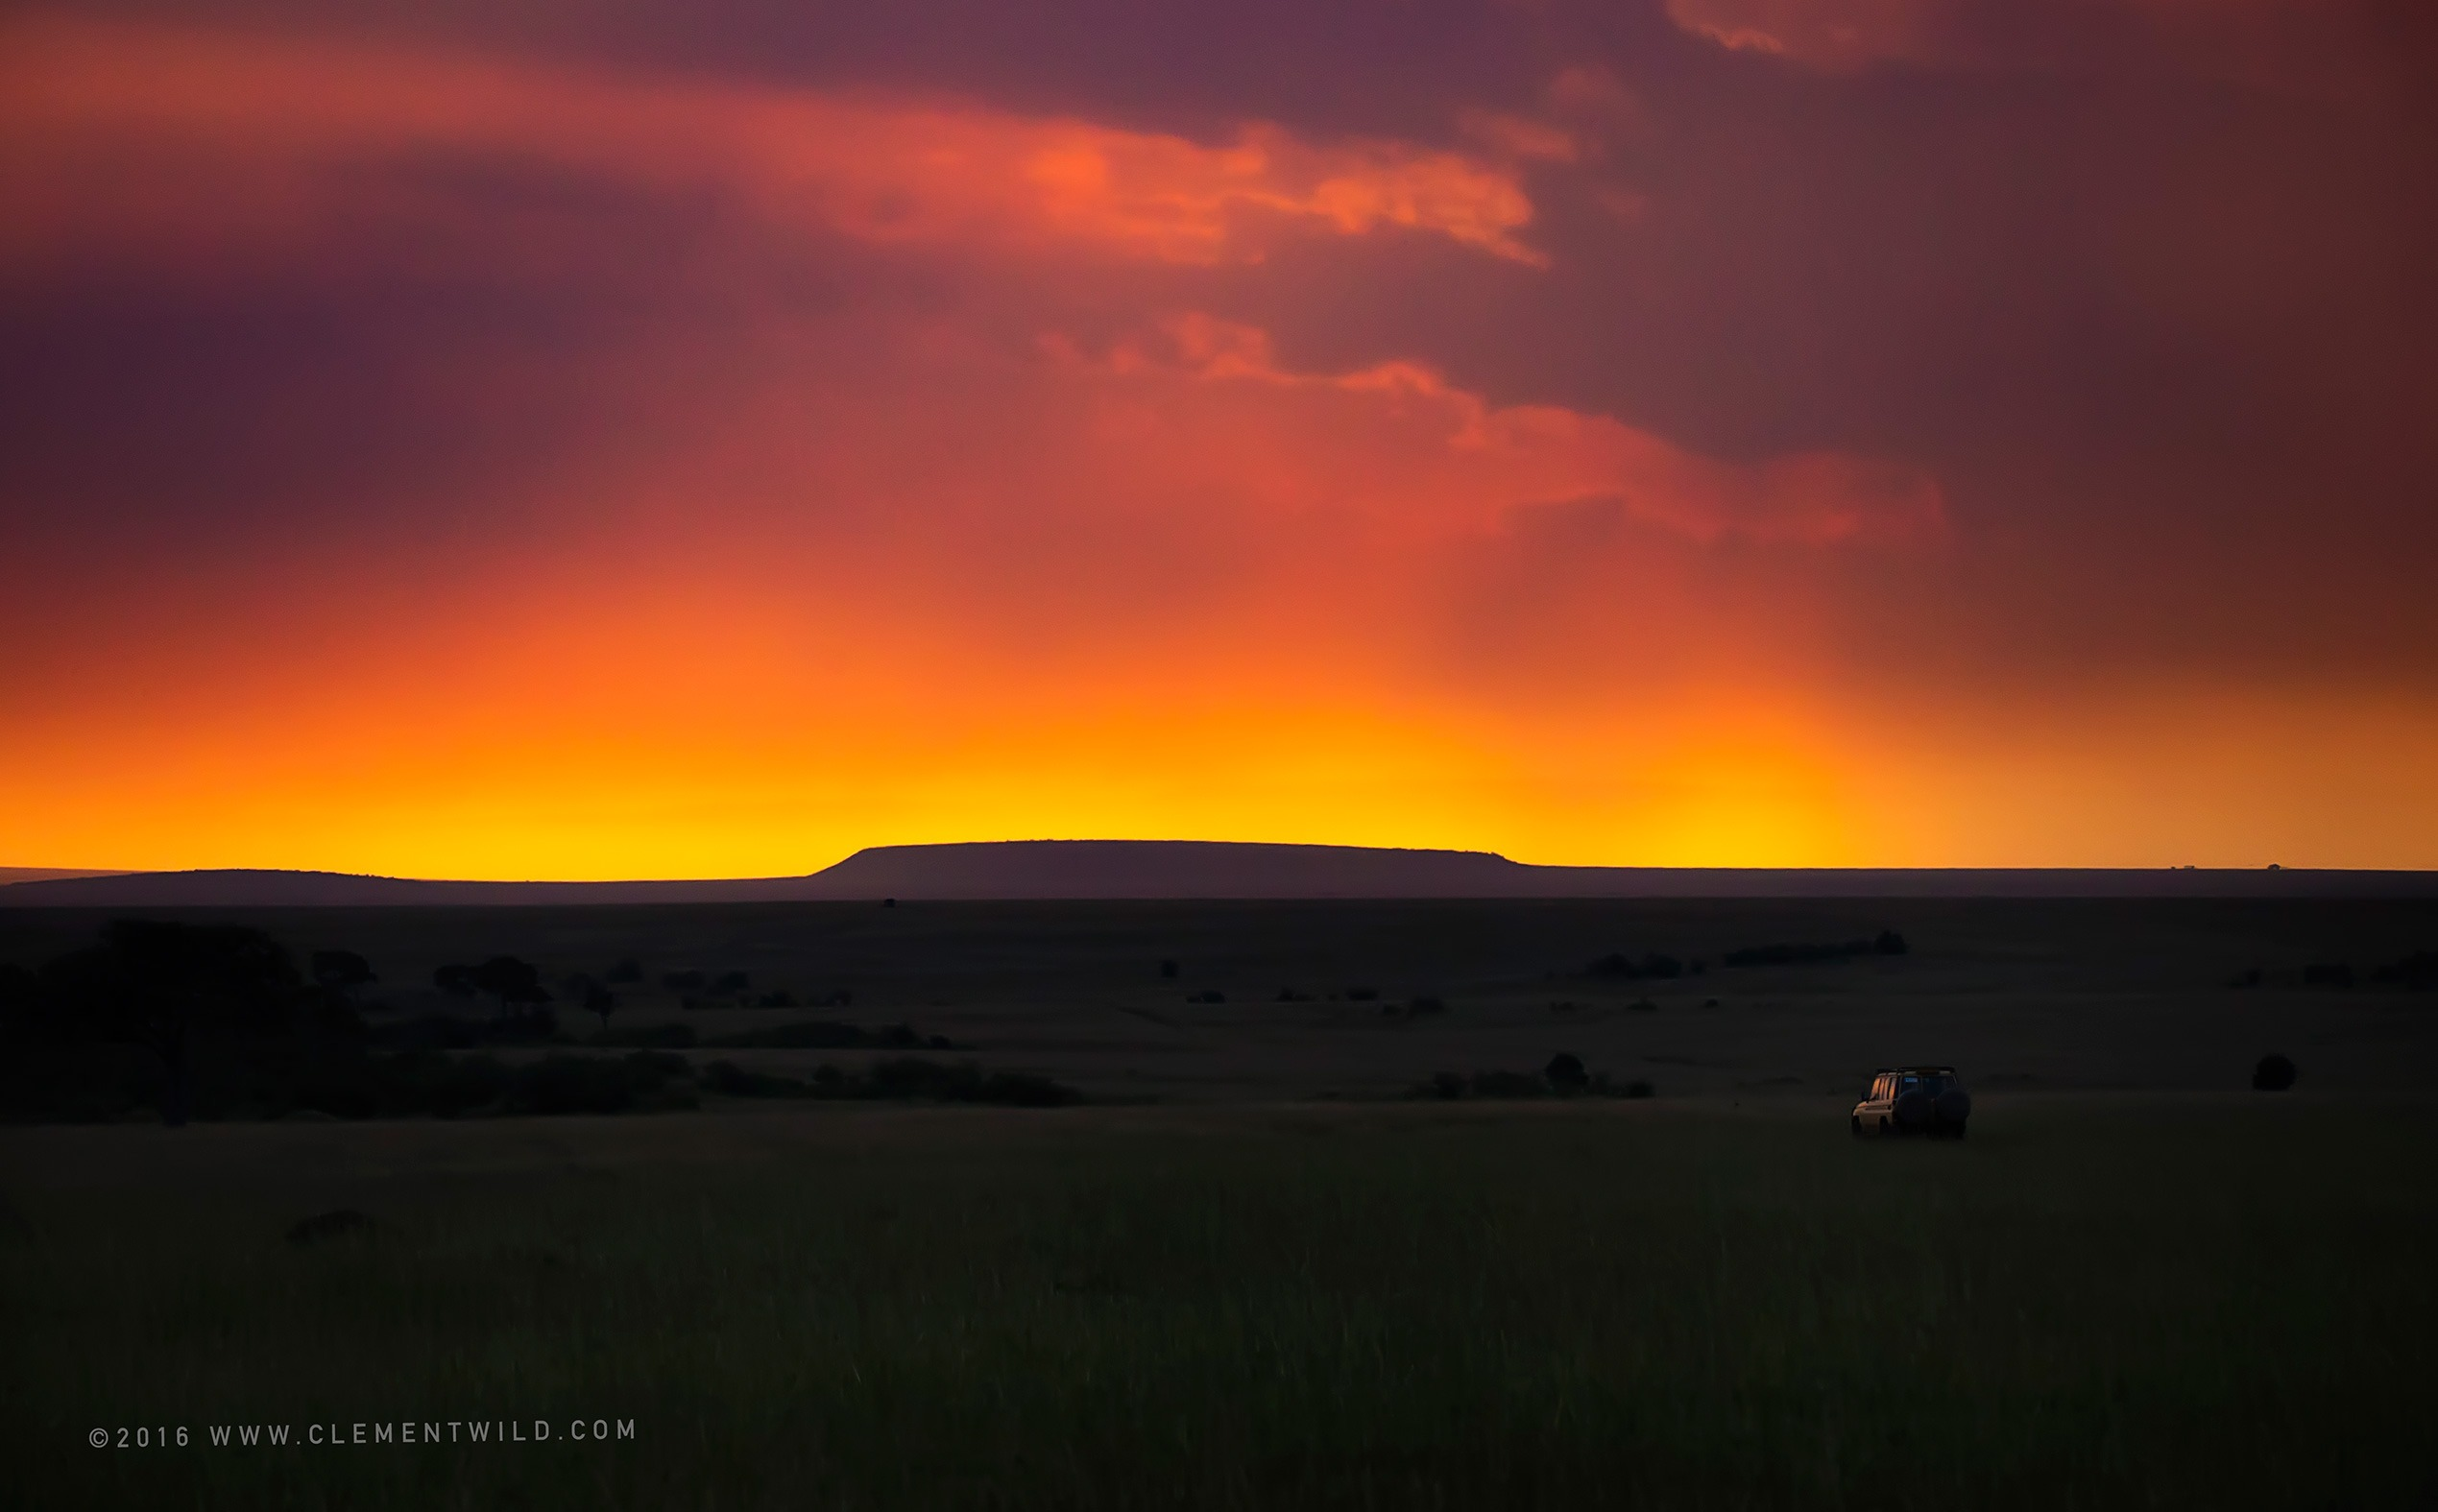 Beautiful Landscape, Wildlife Photography, Photographic Safaris, Clement Wild, Masai Mara, Sunset, Golden Light